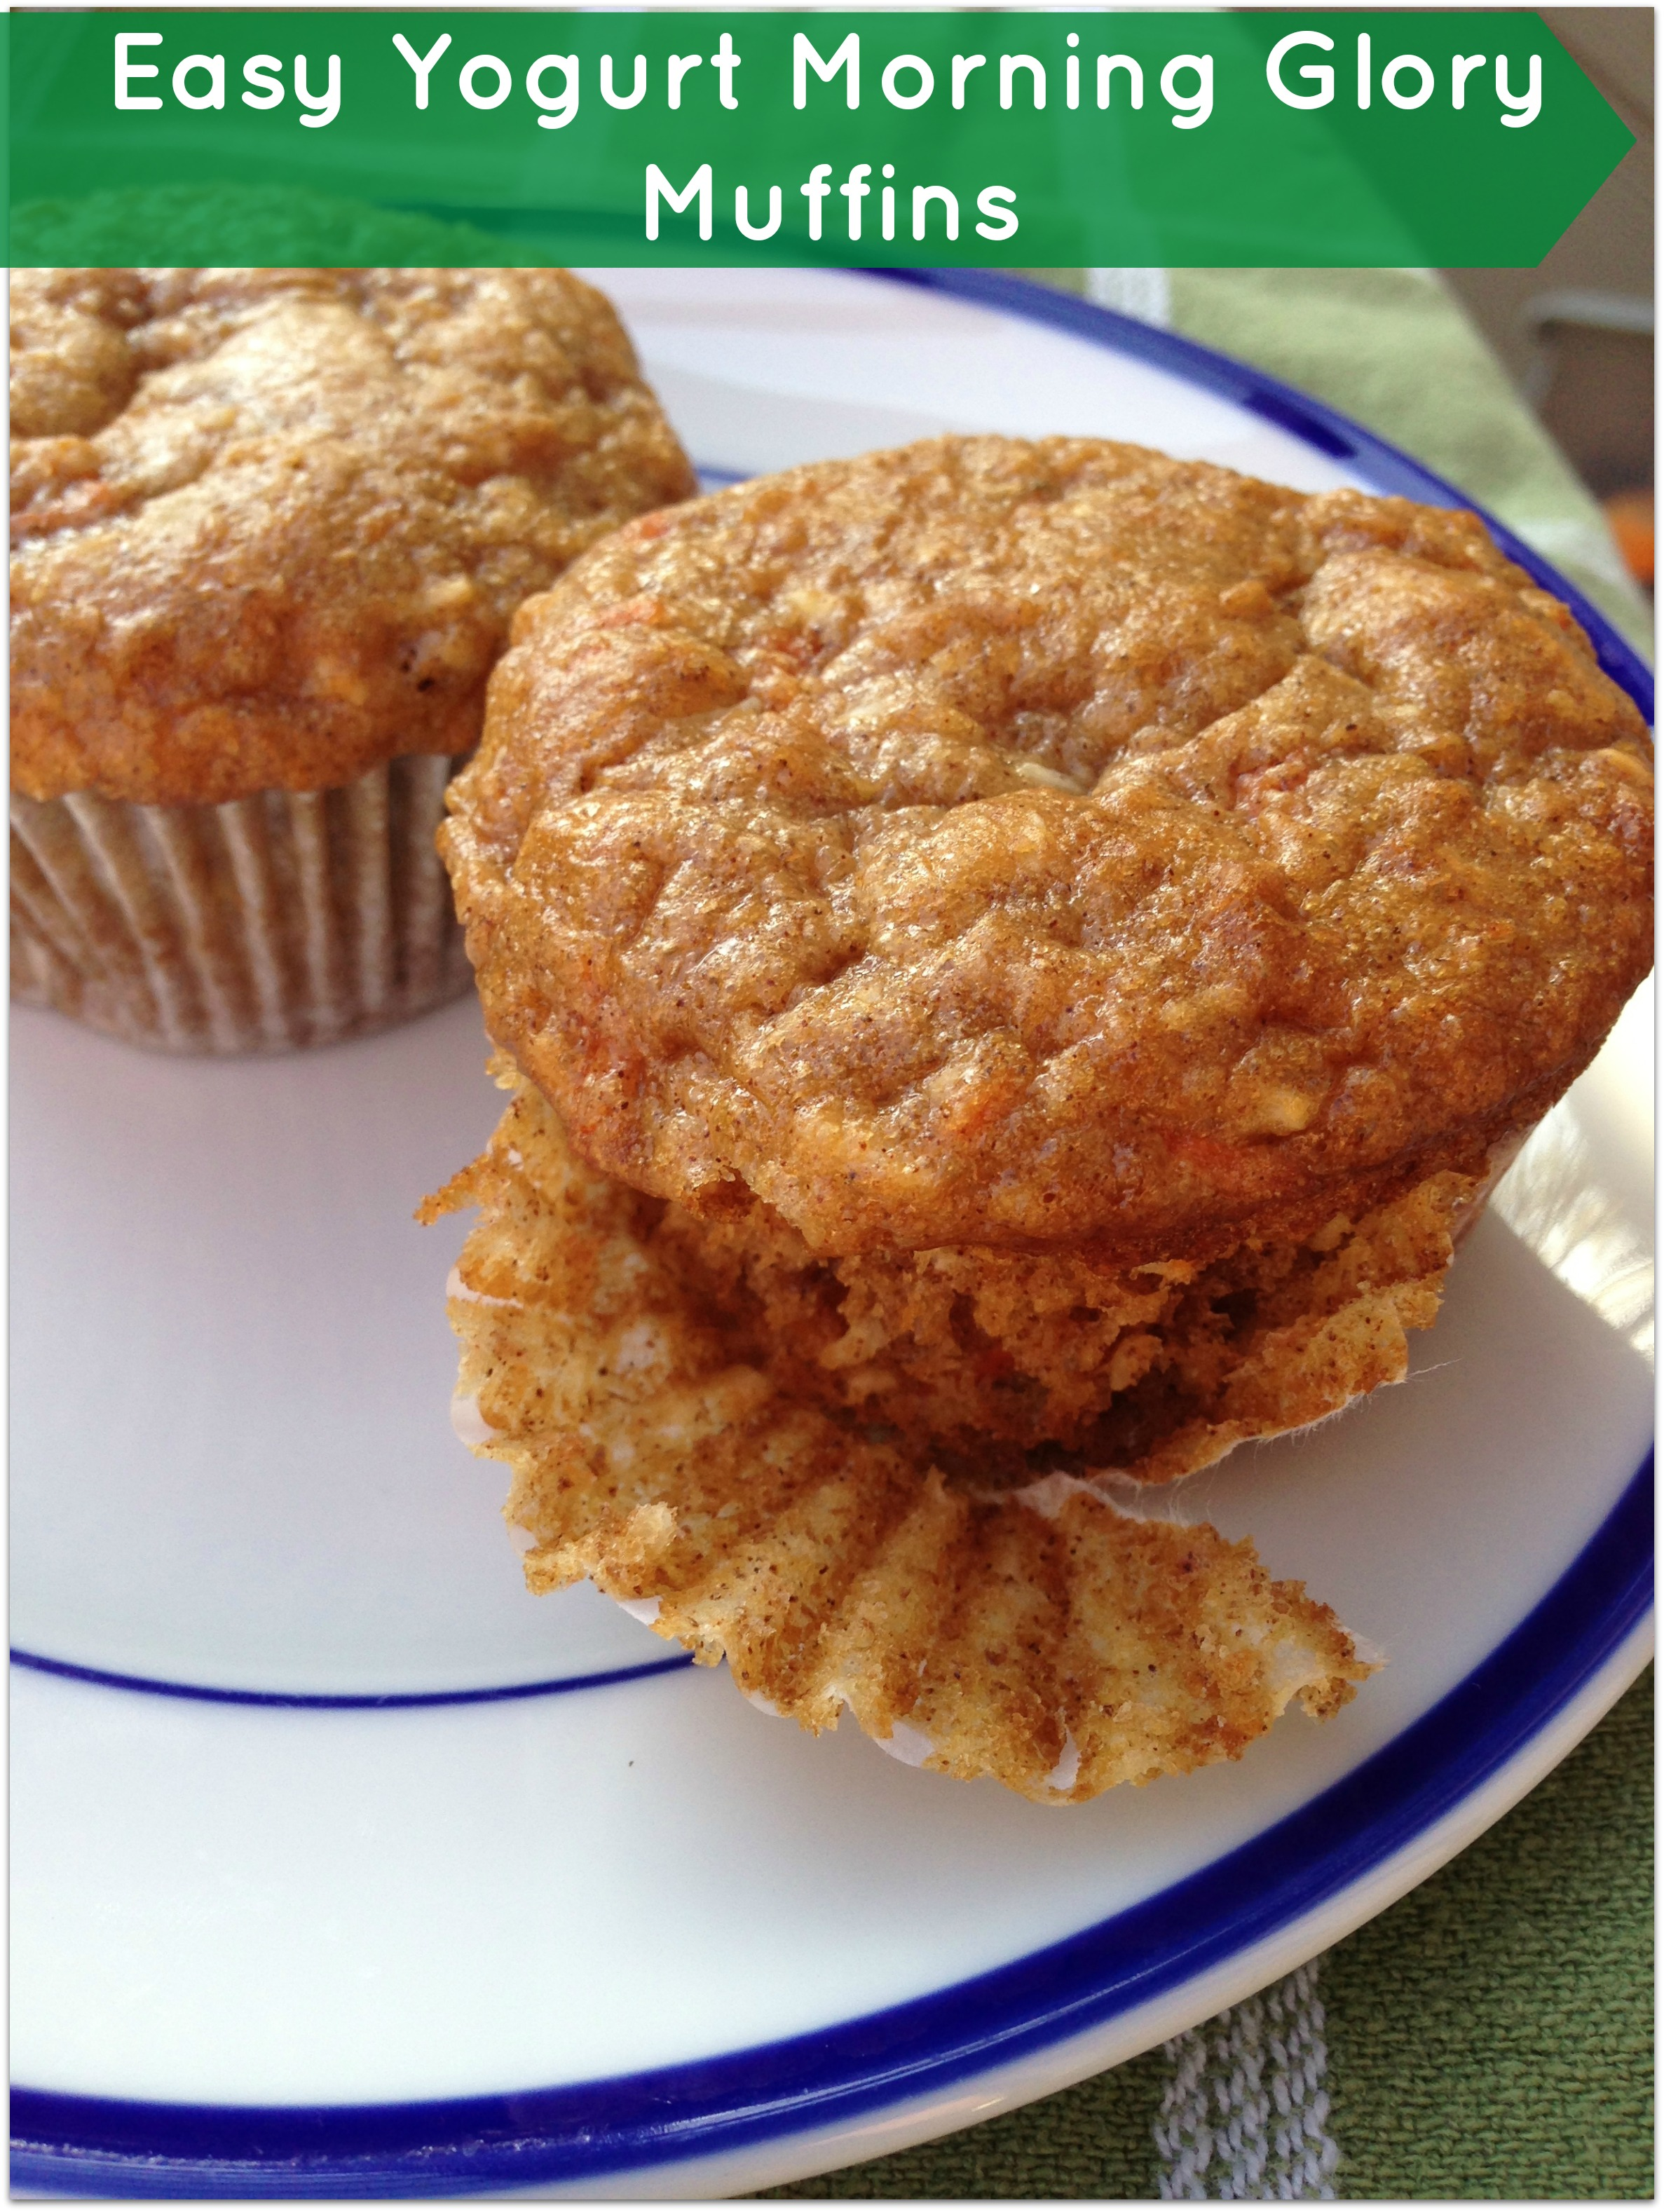 Easy Greek Yogurt Morning Glory Muffins - Merry About Town